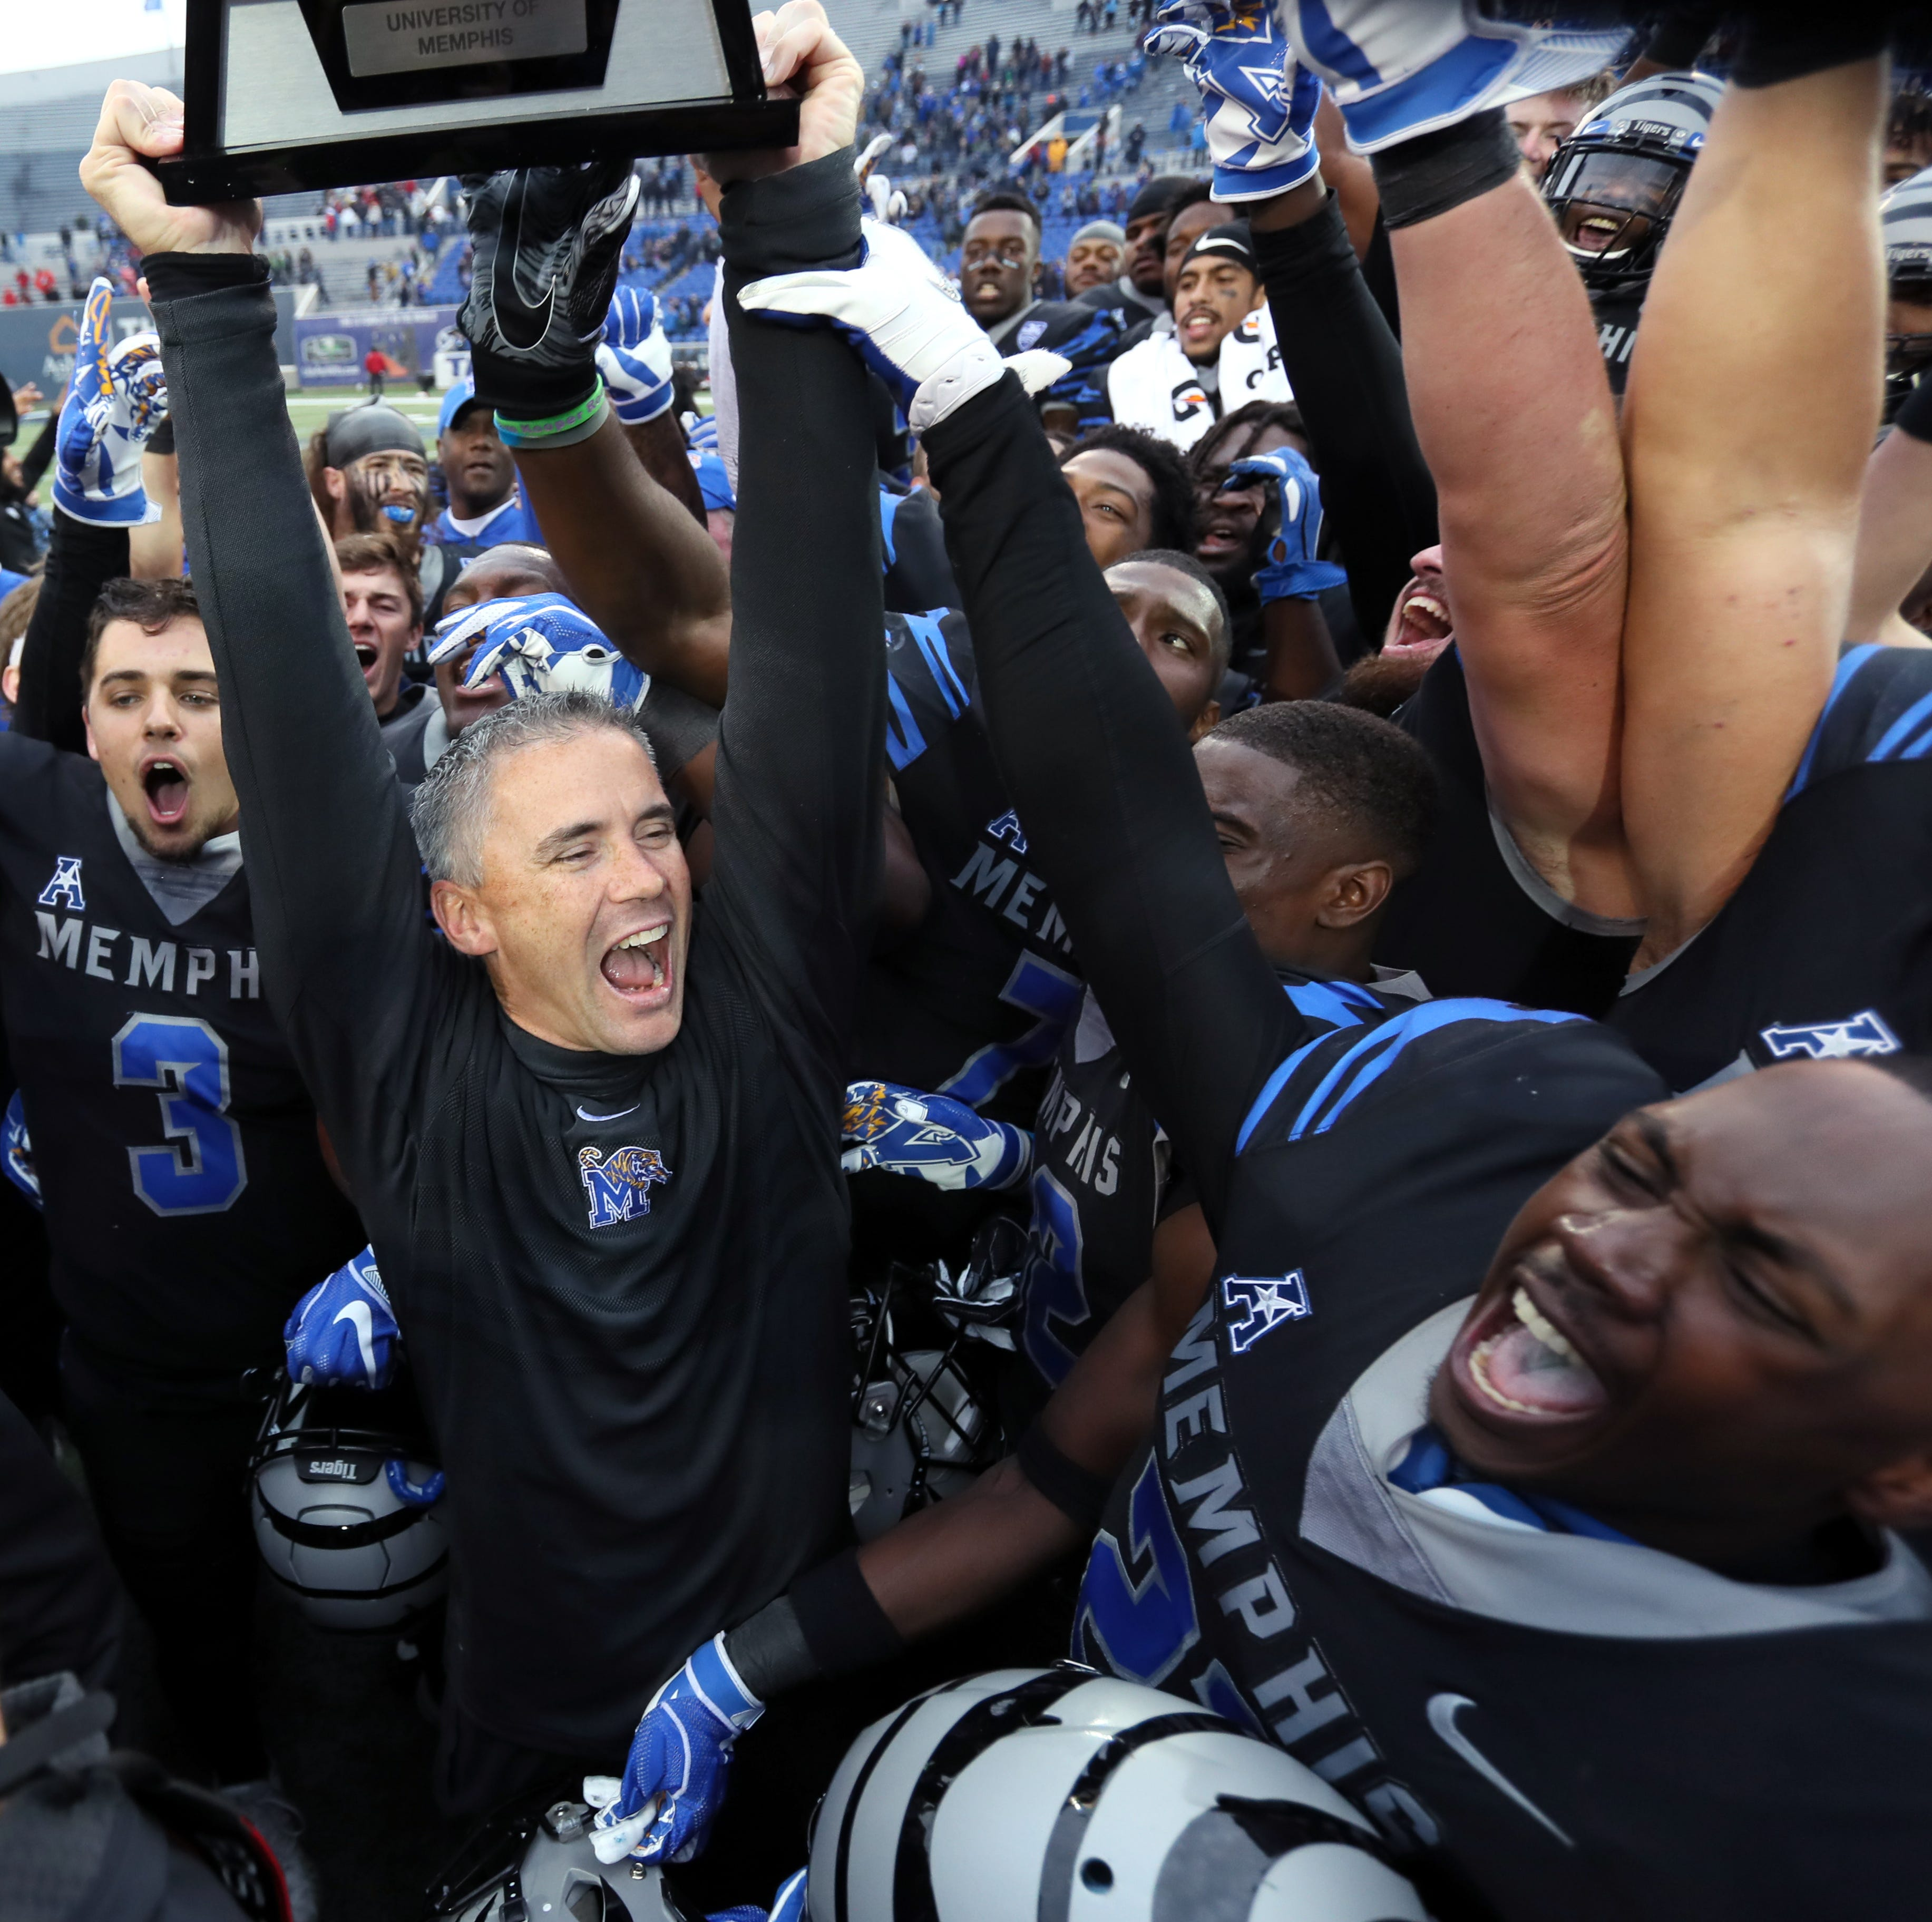 Mike Norvell staying at Memphis